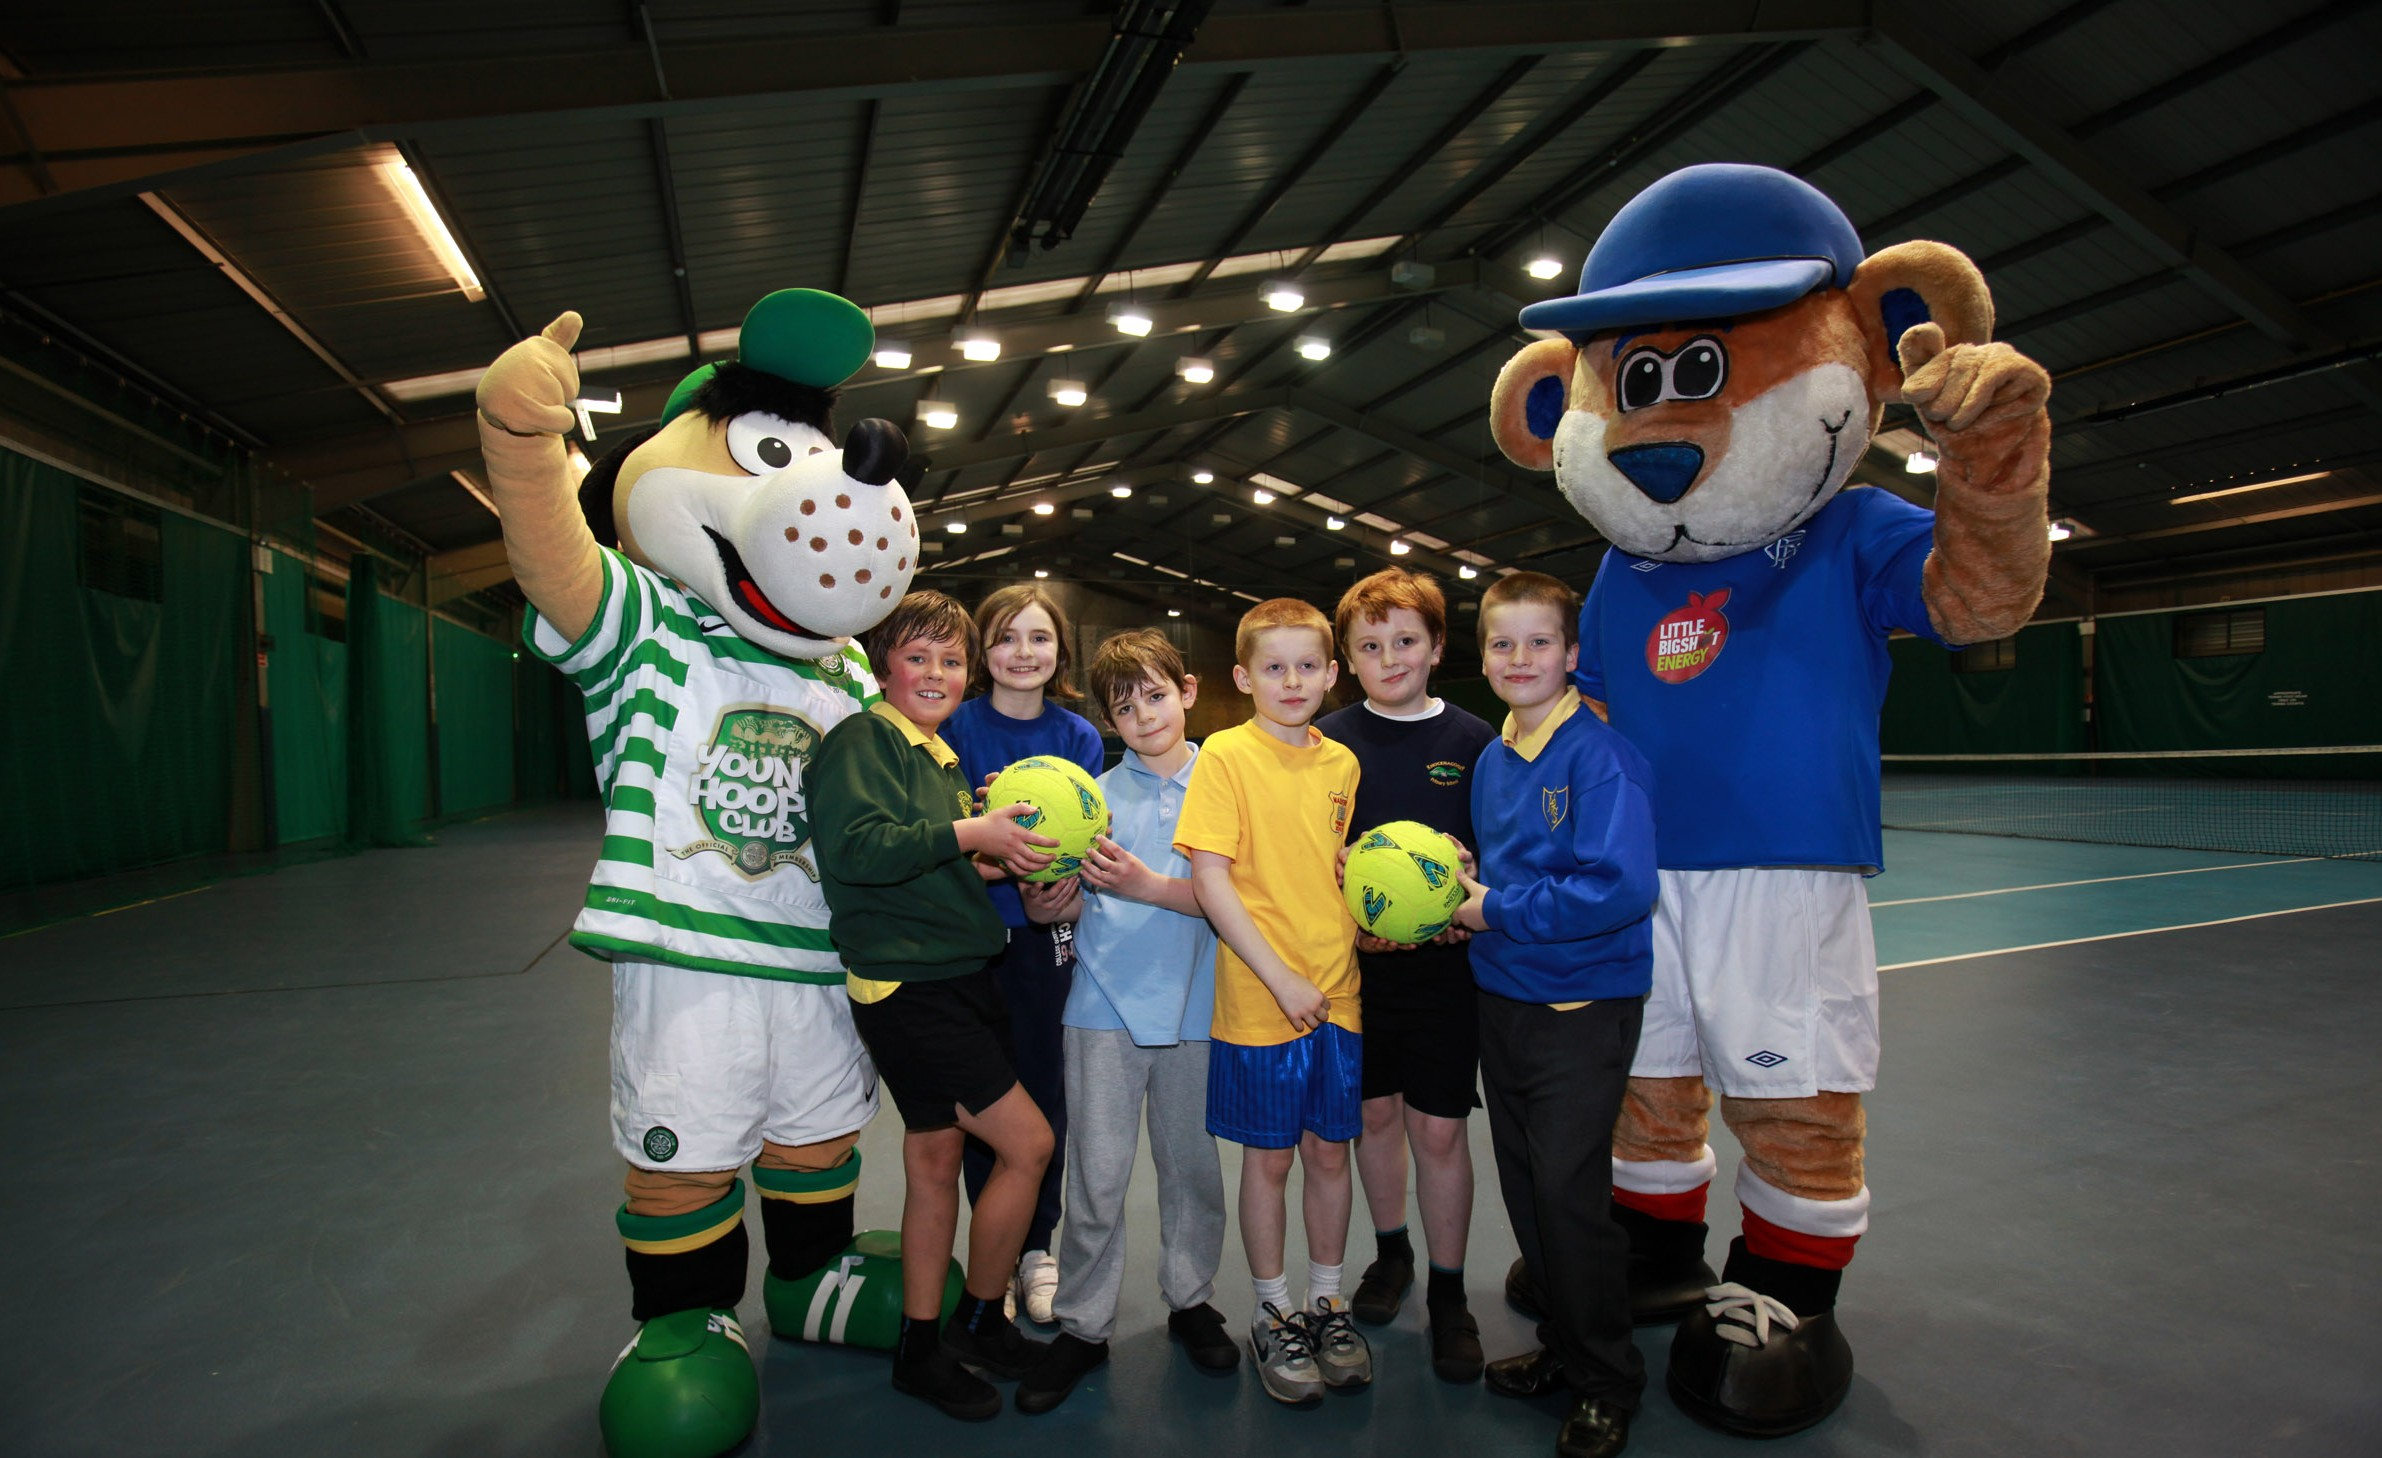 Fair play as Old Firm initiative helps 2,000 young people